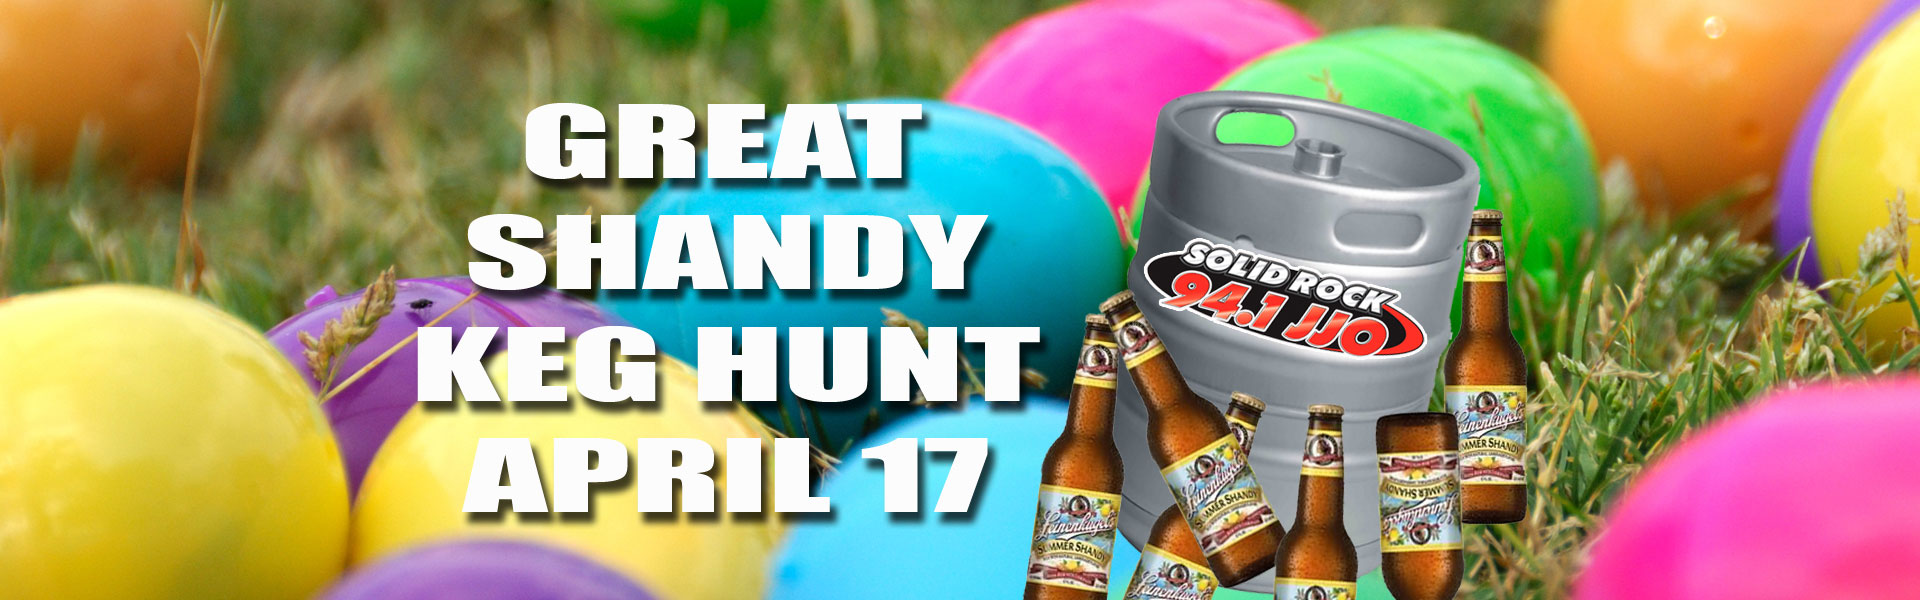 shandy-keg-hunt-2014